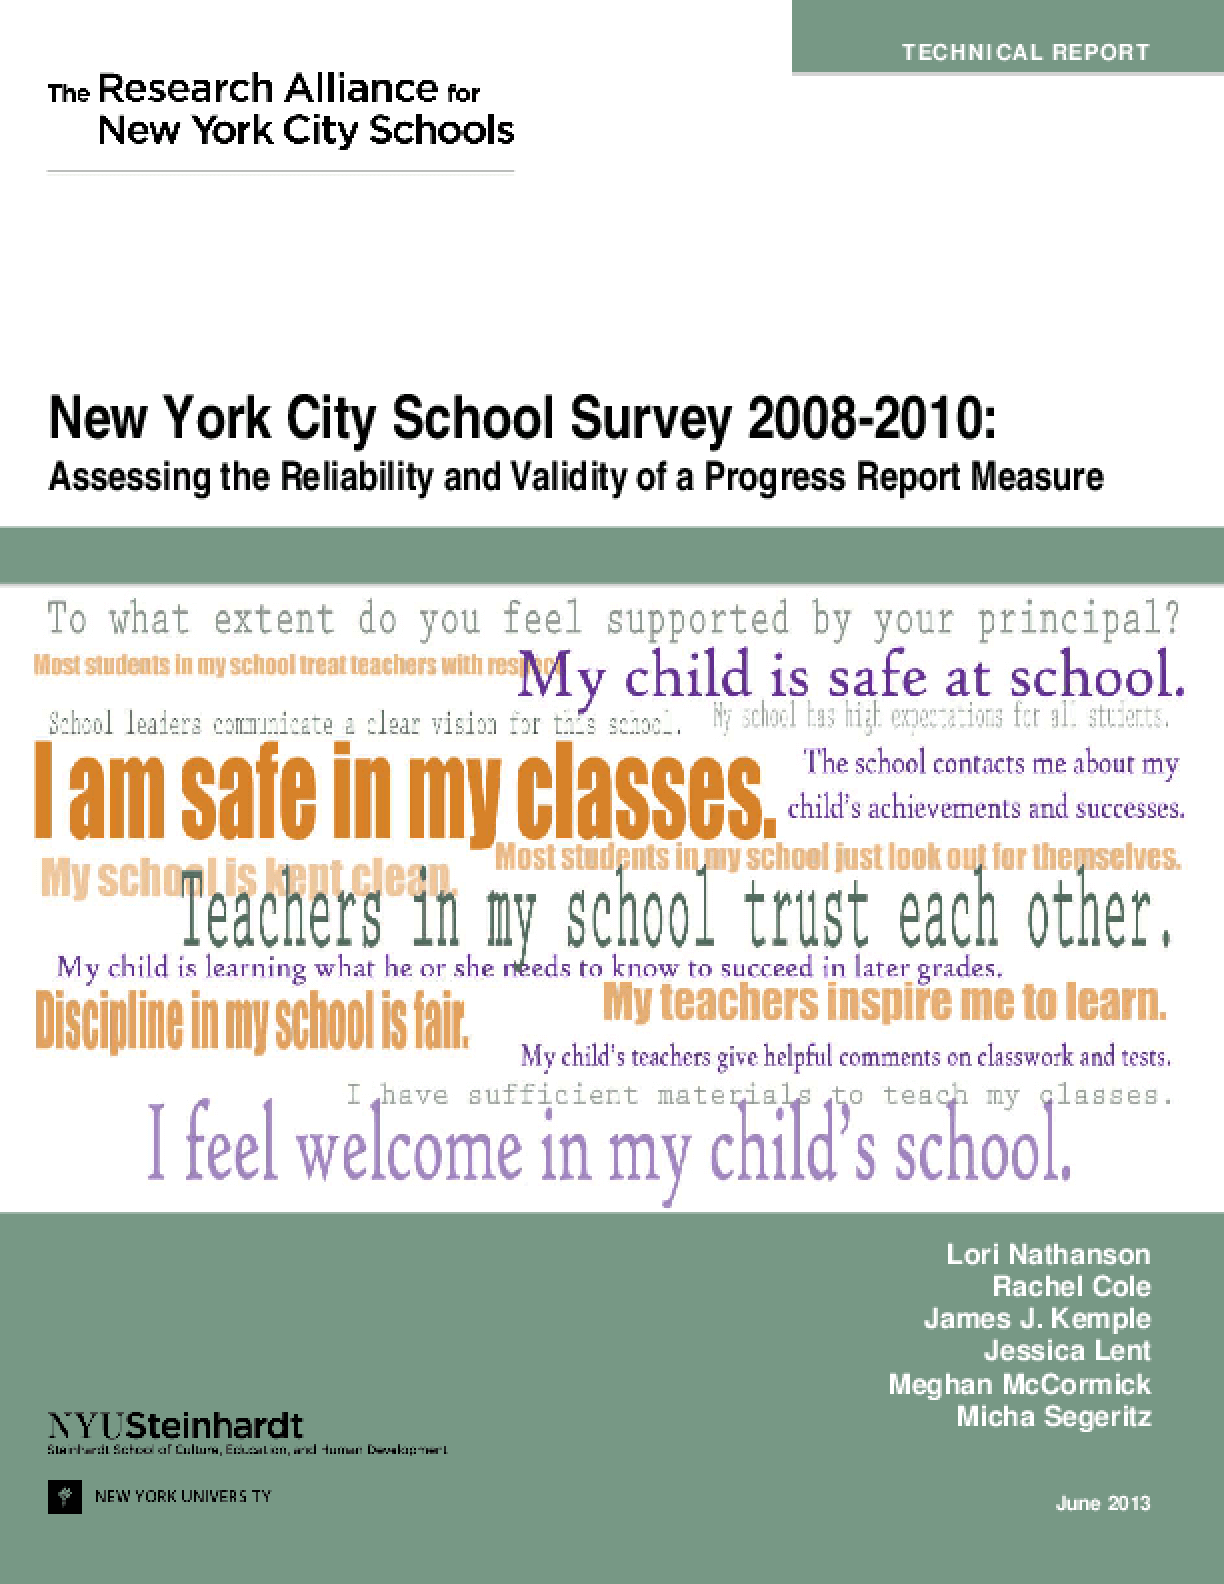 New York City School Survey 2008-2010: Assessing the Reliability and Validity of a Progress Report Measure